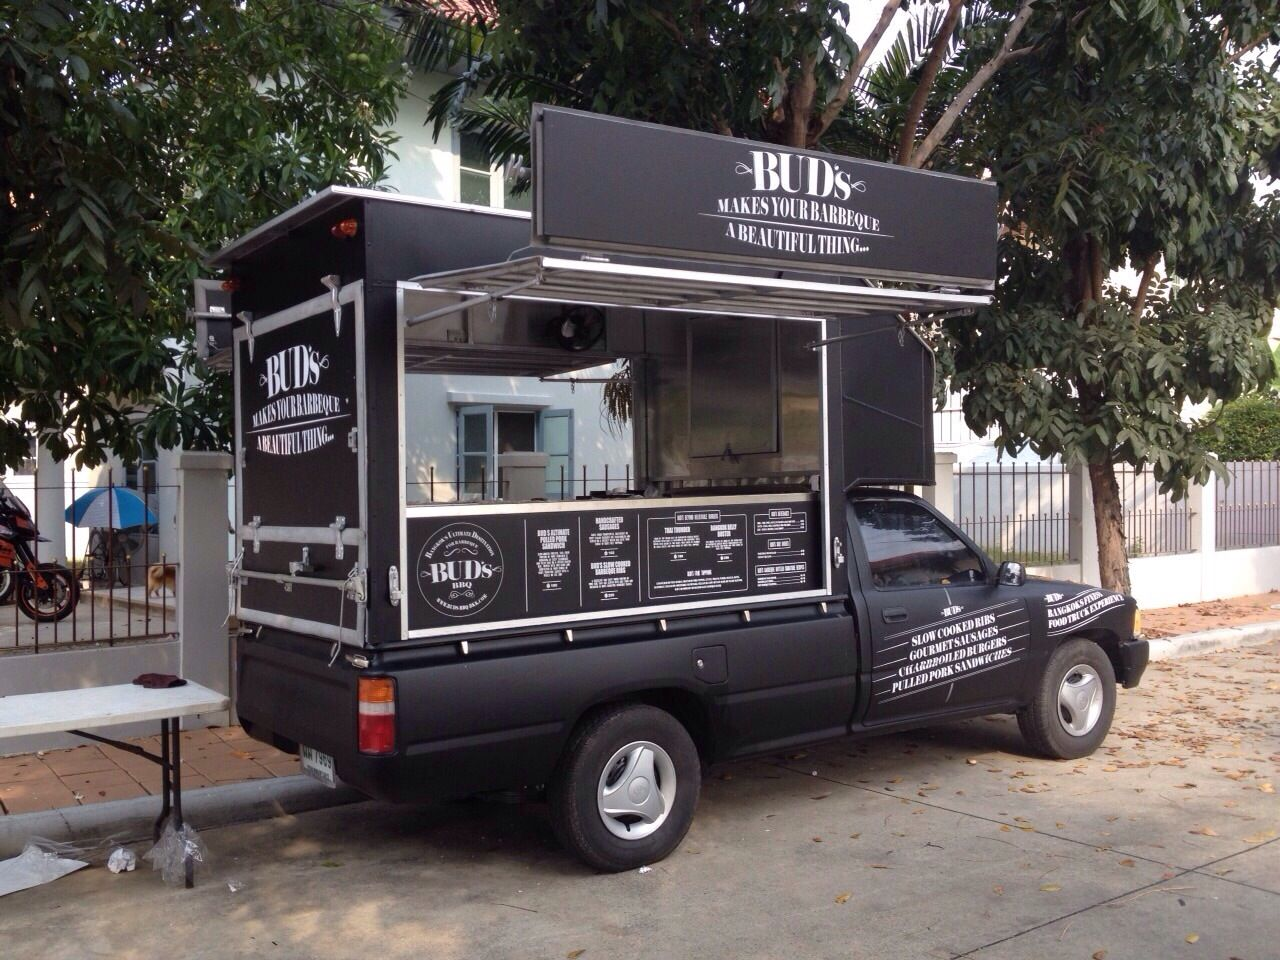 Alchemy Coffee Food Truck Bangkok 39s Food Truck Scene Shows No Sign Of Letting Up